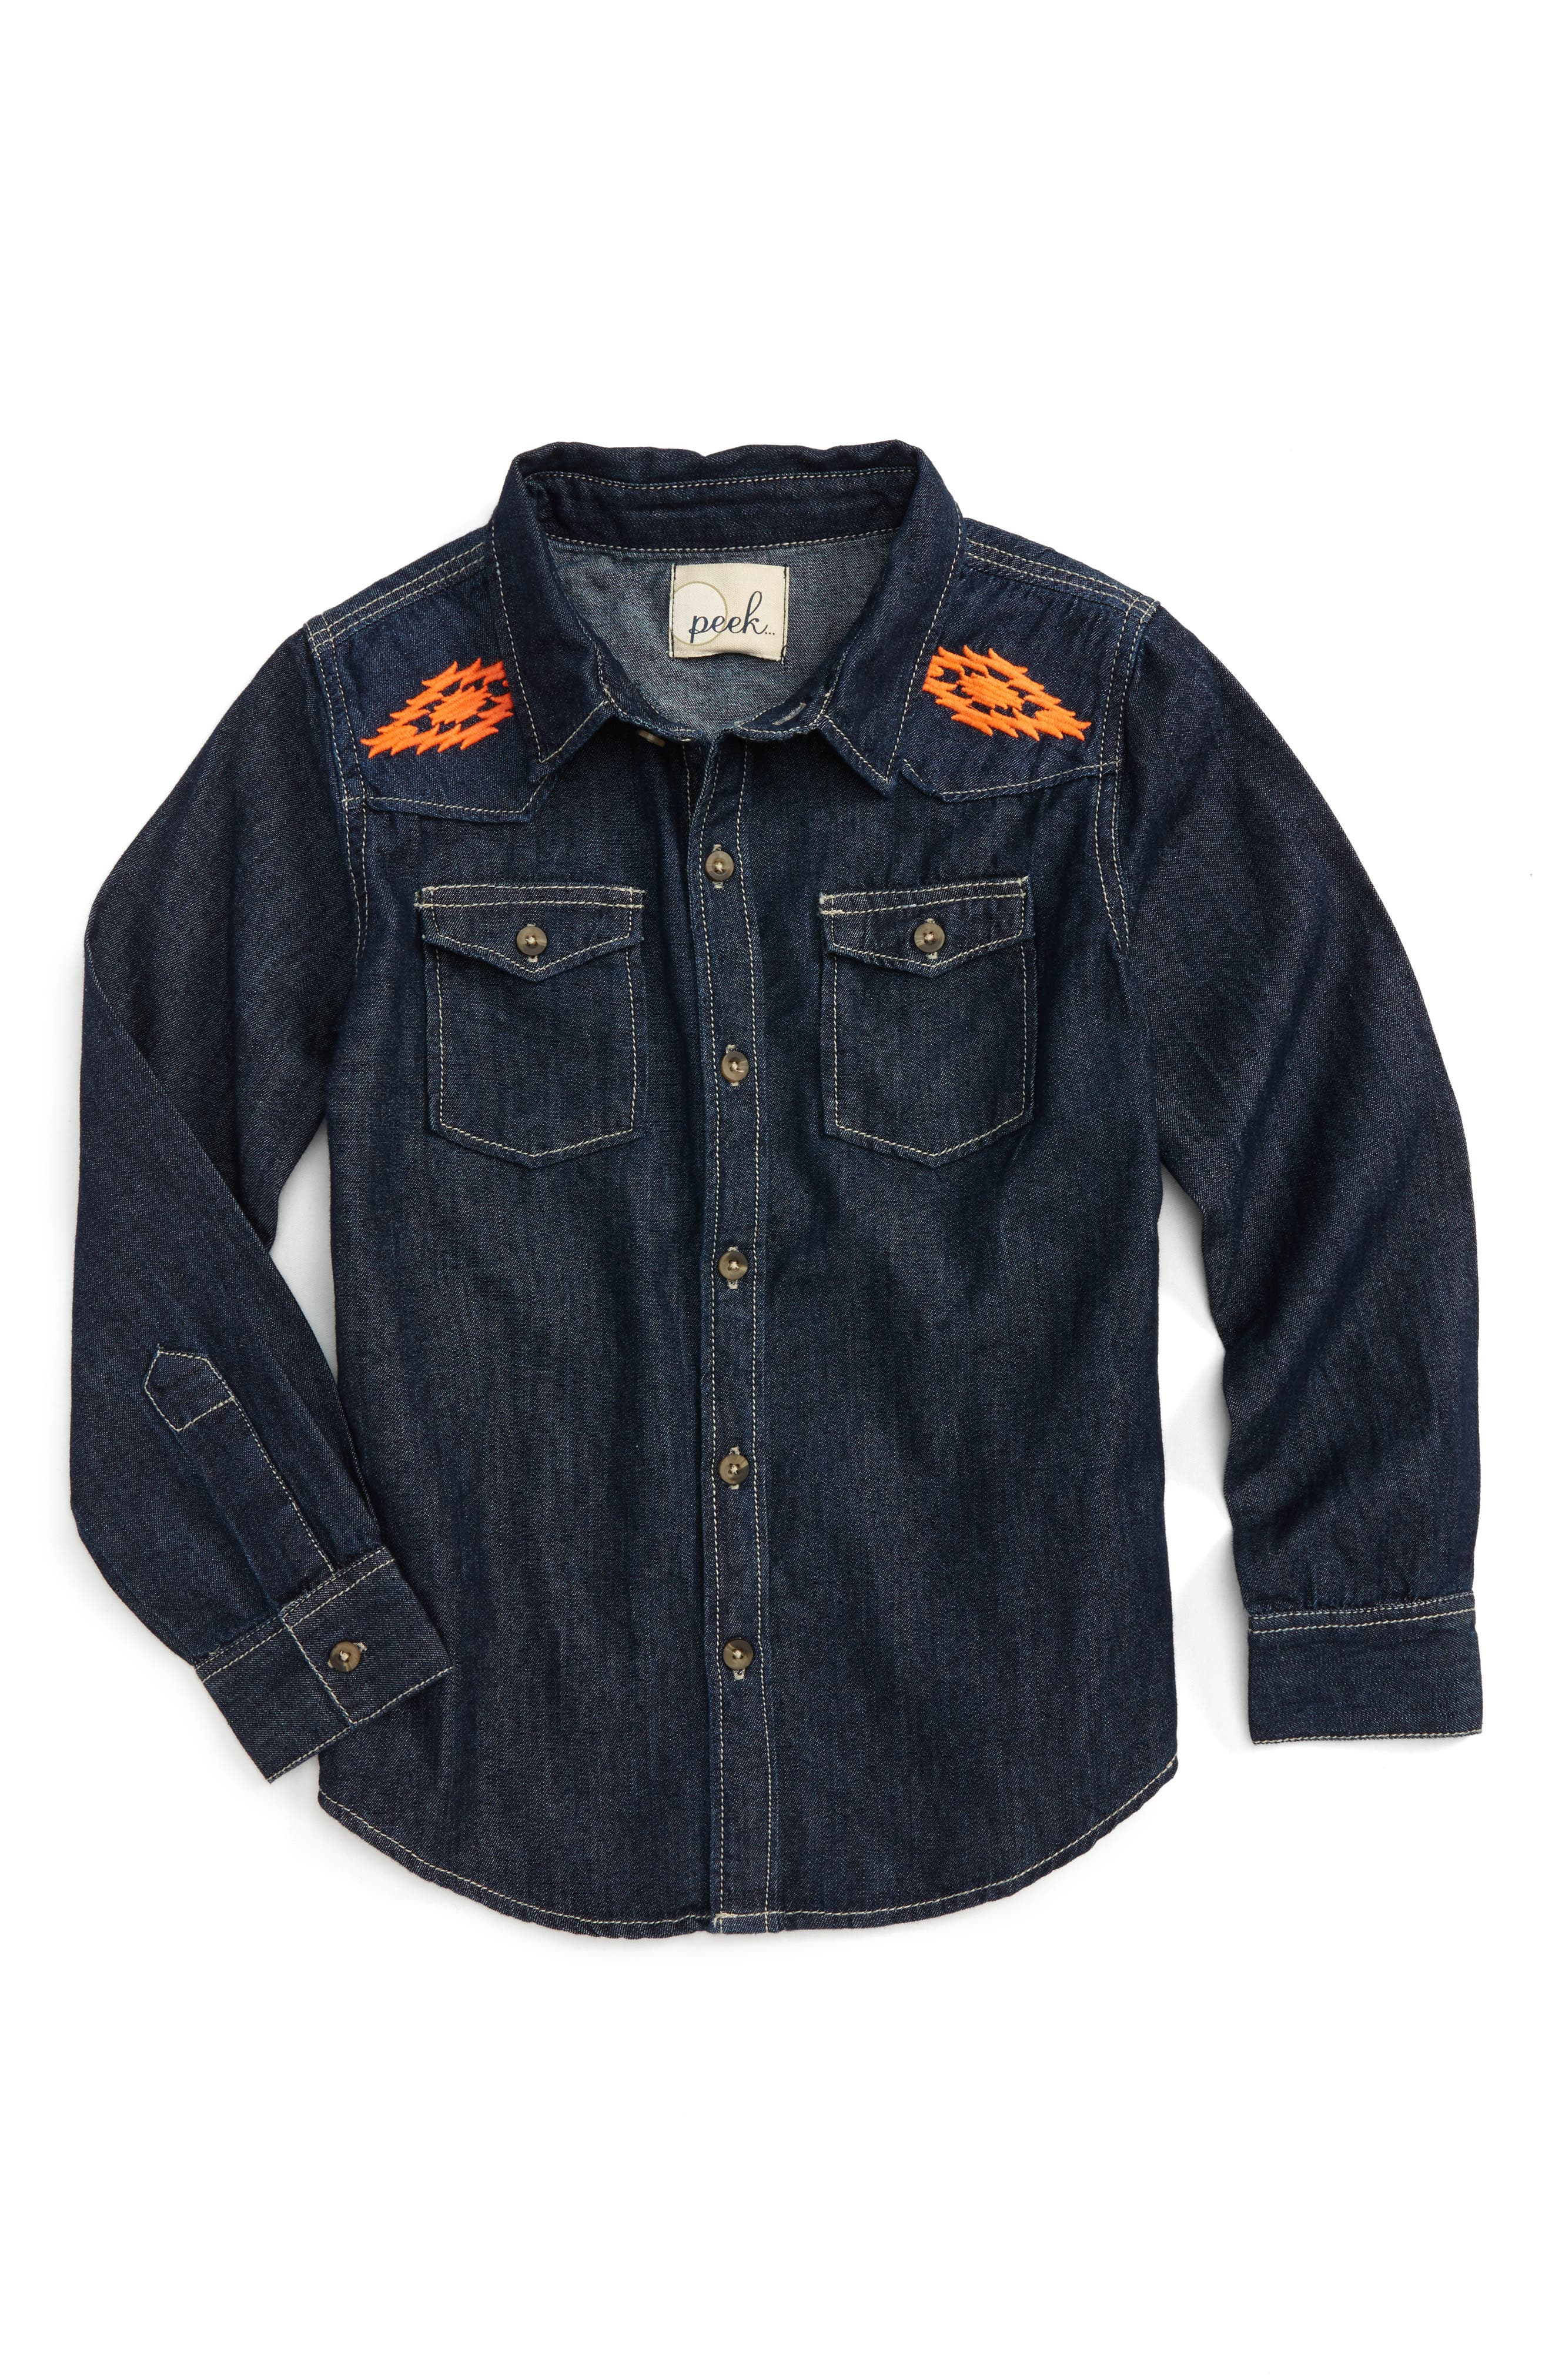 Peek Nash Embroidered Denim Shirt (Toddler Boys, Little Boys & Big Boys)